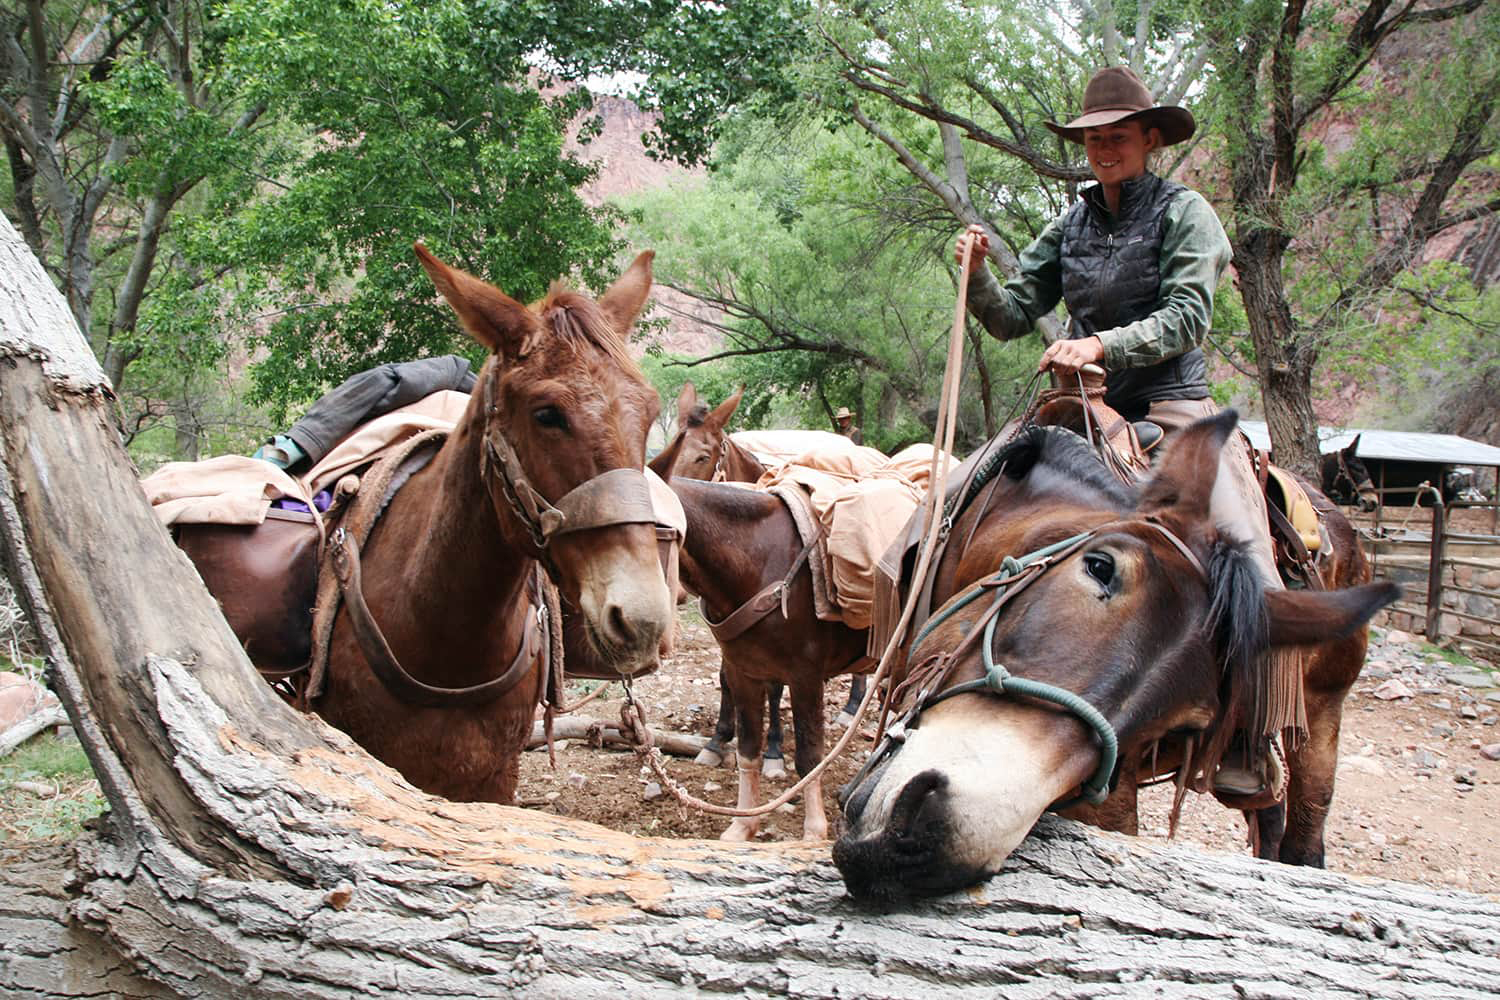 Colorado River Discovery >> Stubbornly steadfast: Mules have kept the Grand Canyon ...